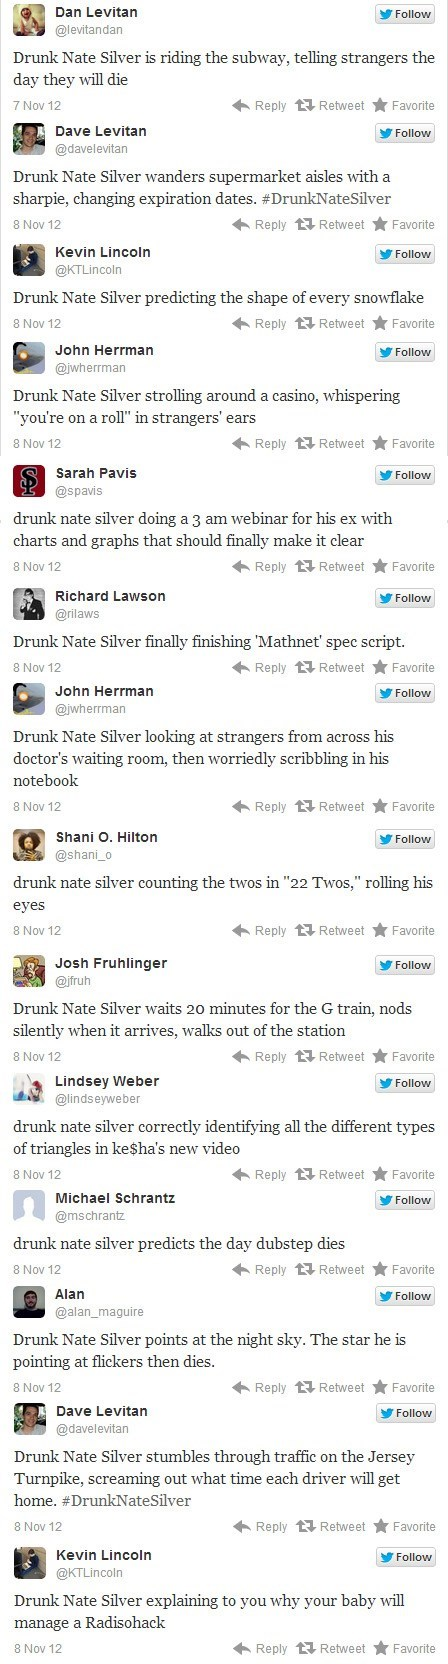 Drunk Nate Silver